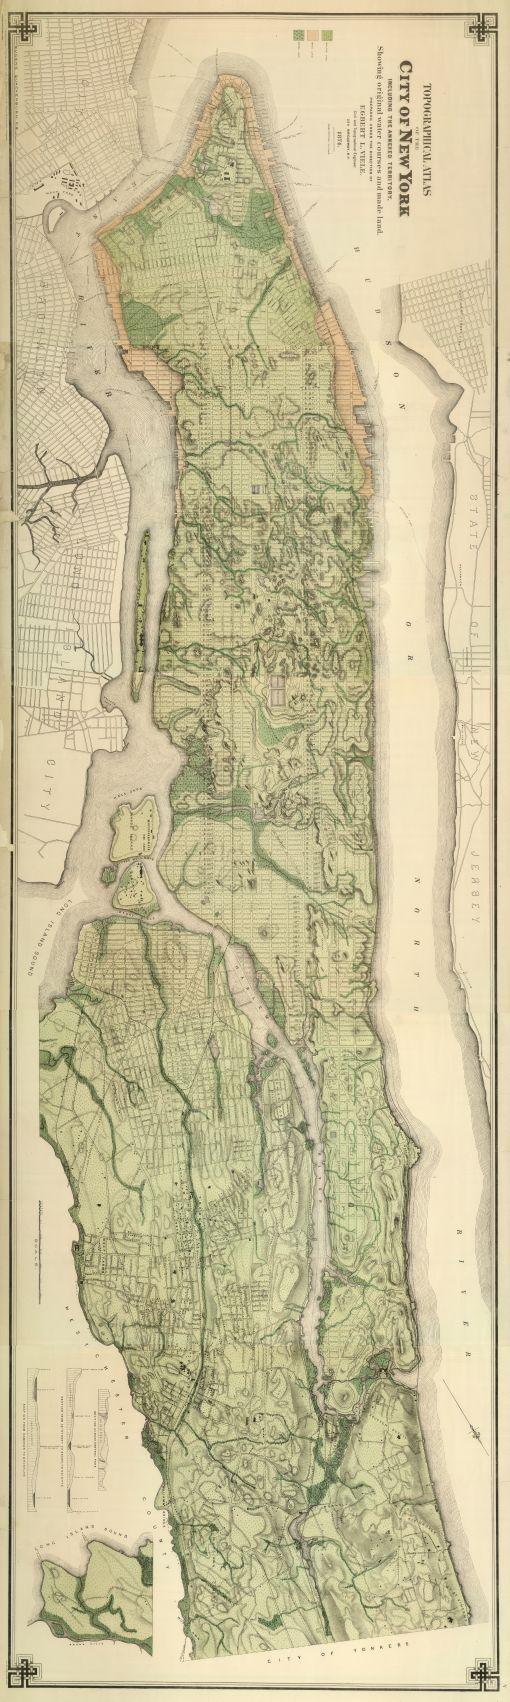 19th century topographic map of NYC